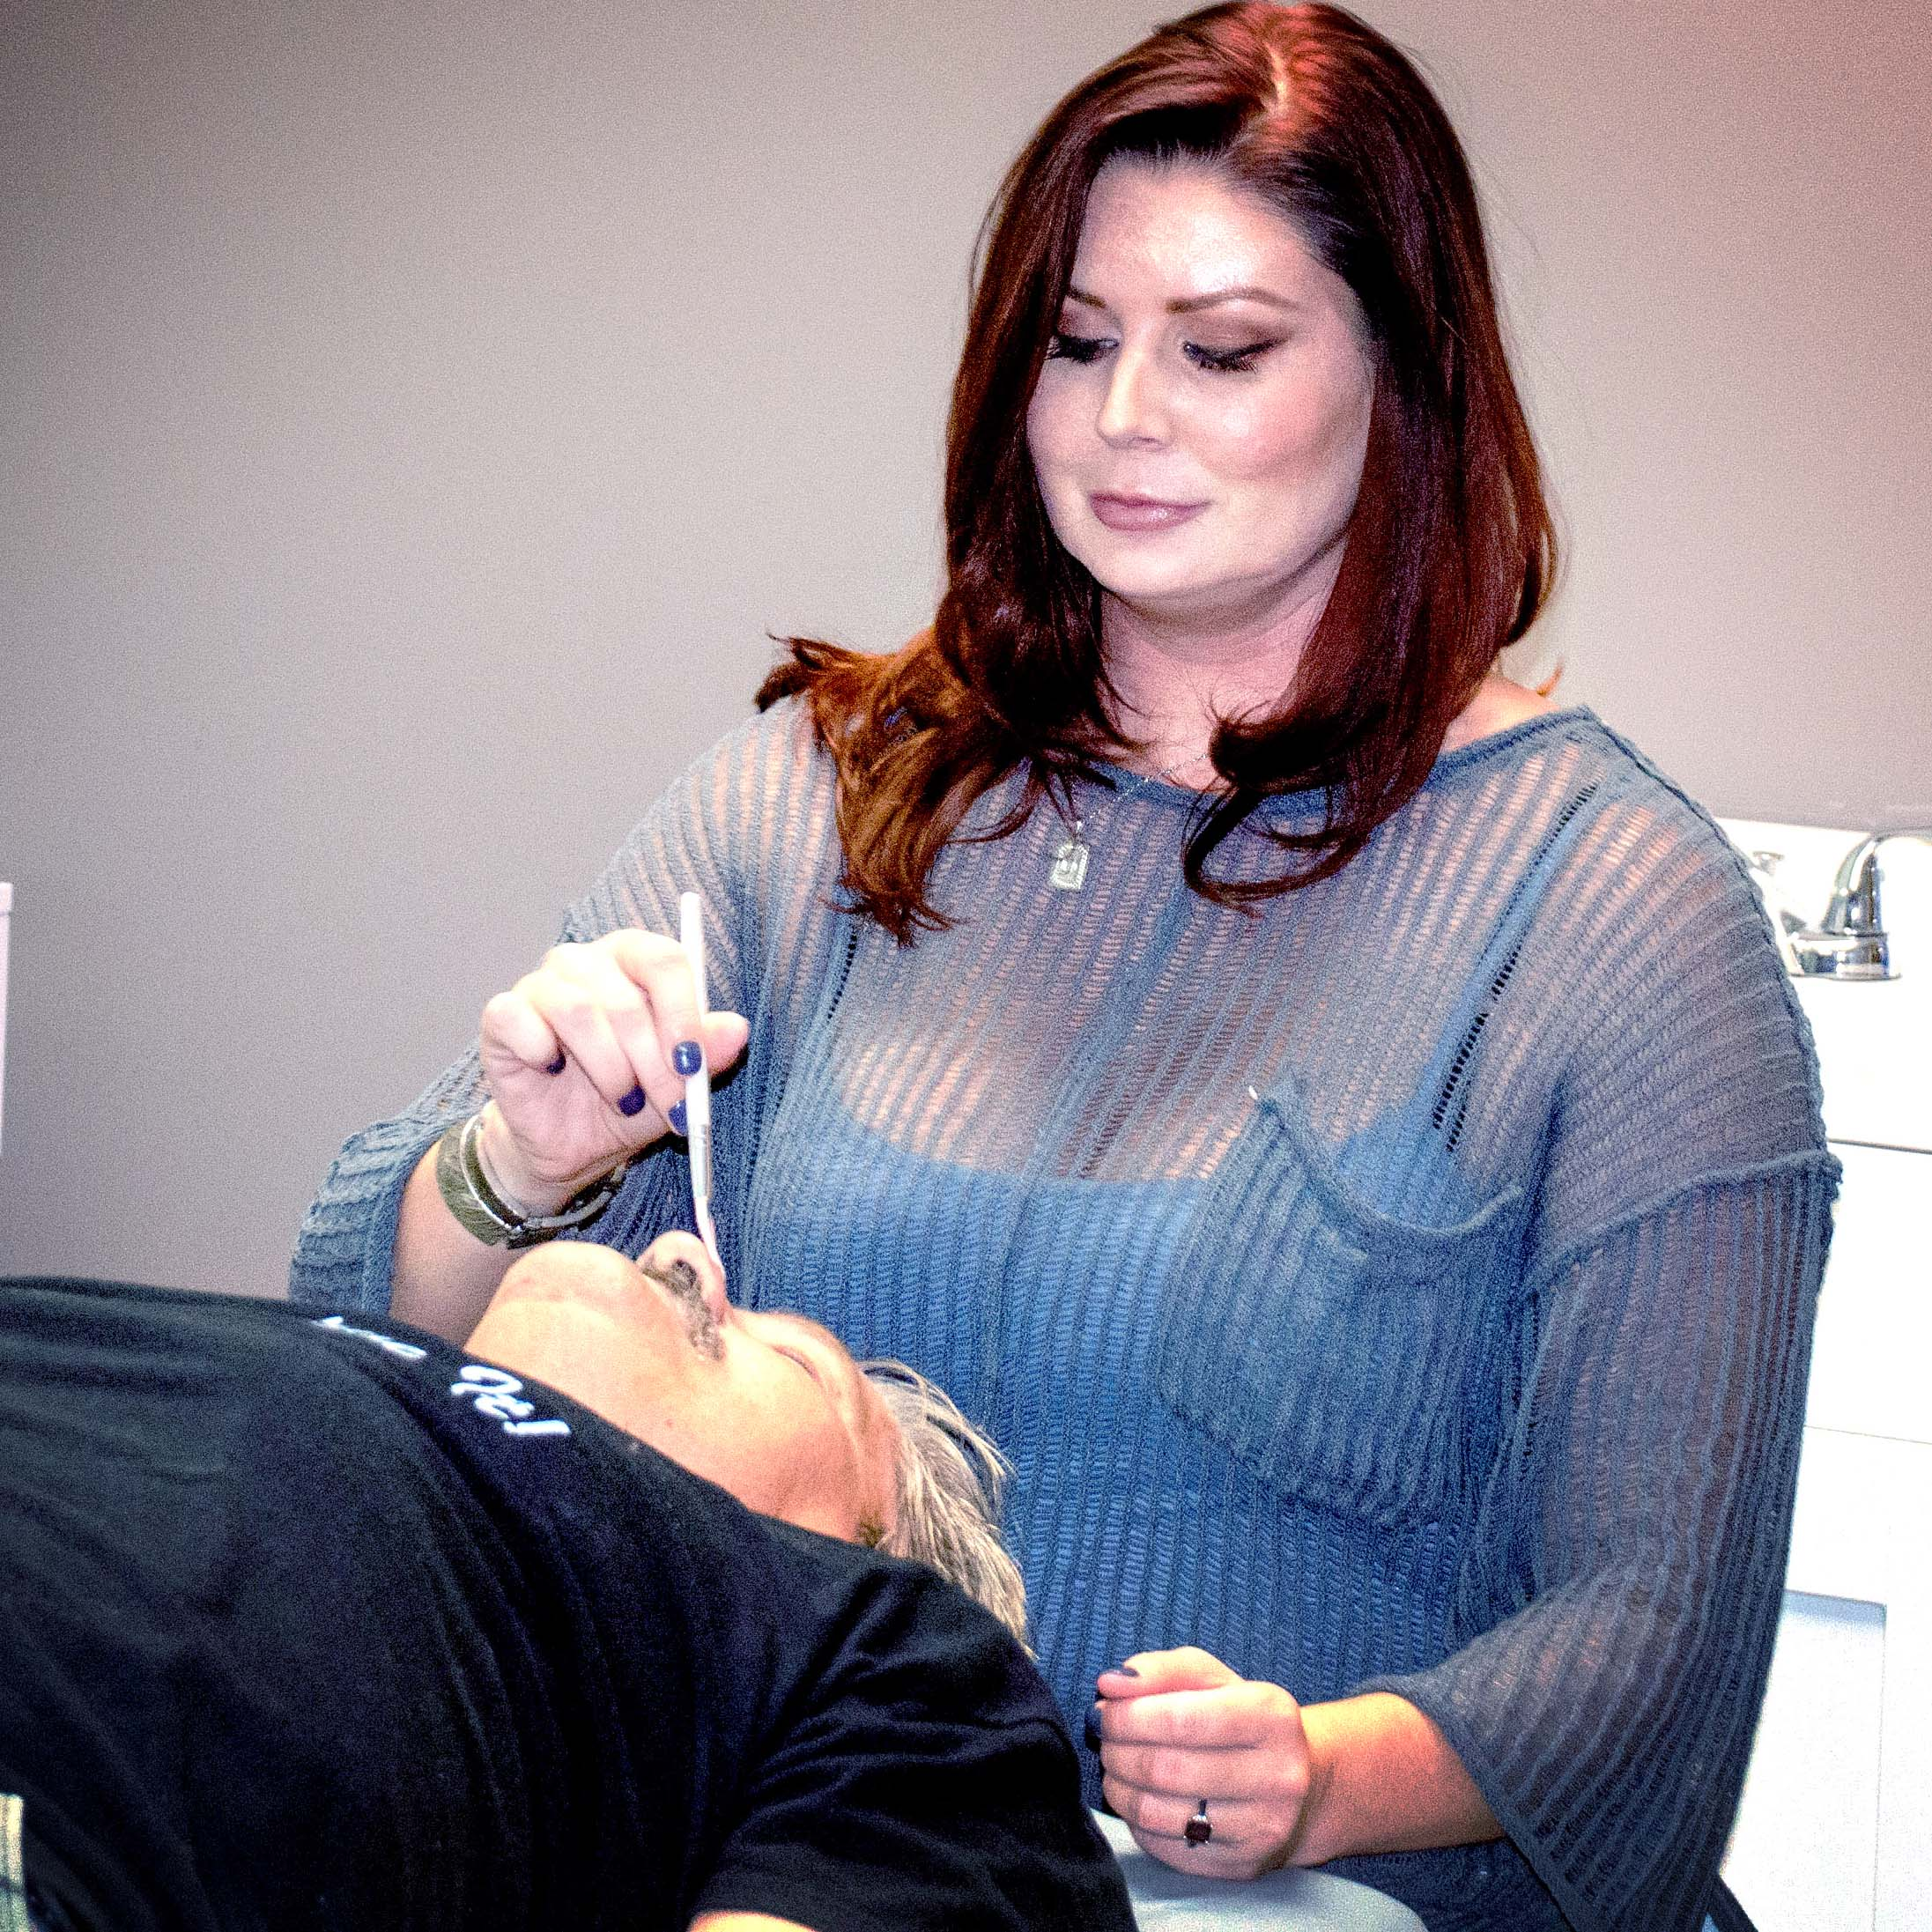 Wearing memorabilia Thursday at Marion Senior Center's St. Patrick's Day celebration were, from left, Janet Bryant, Barb Hardin, Lucille Bitner, Beth McGuire, and Roger Bitner.